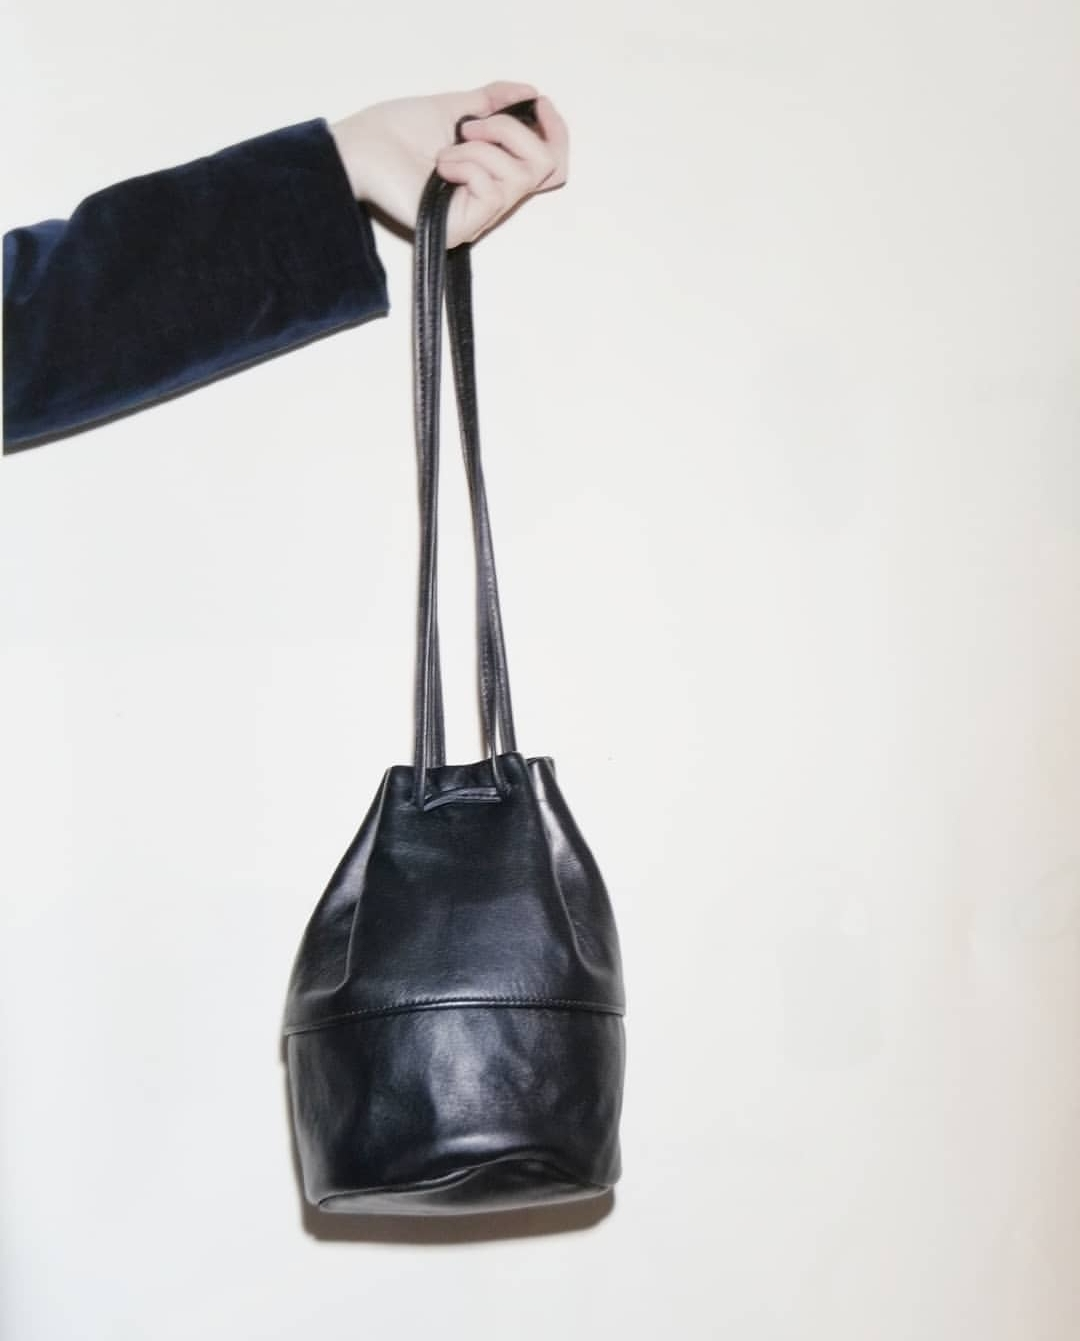 STRING BAG と SHOULDER BAG  _f0120026_17555696.jpg